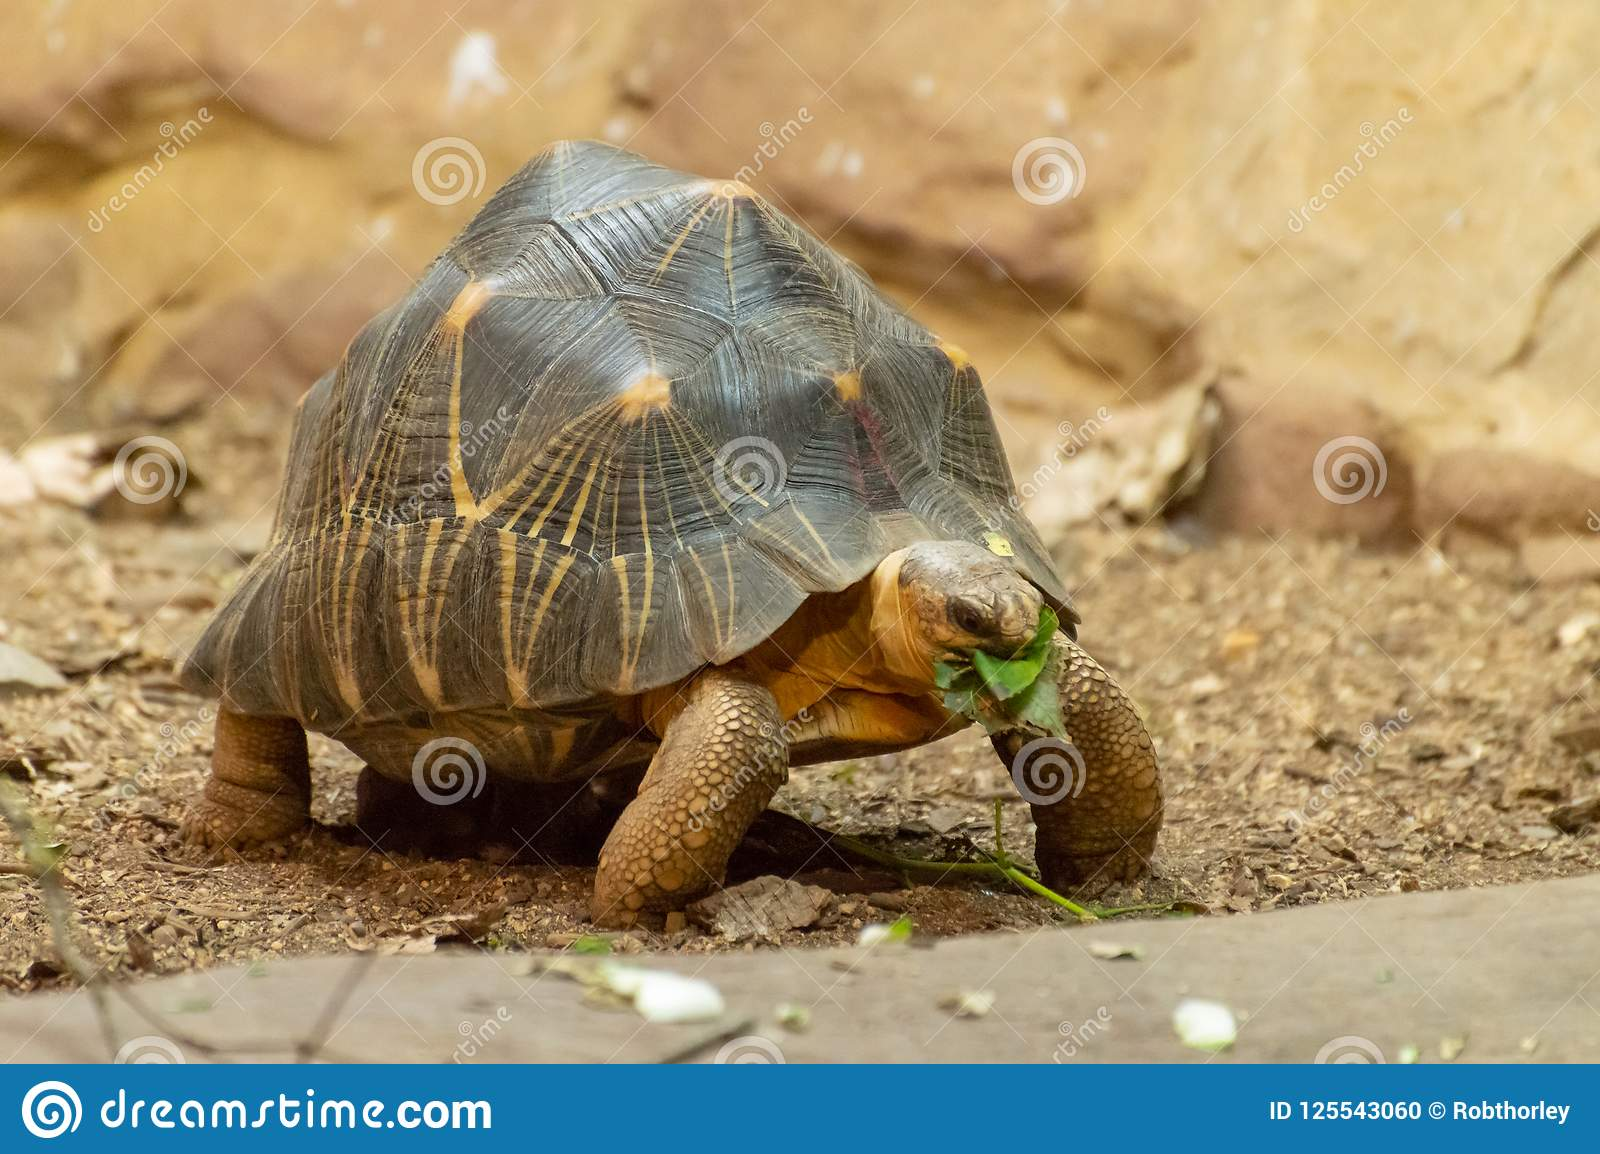 An isolated radiated tortoise eating a leaf.